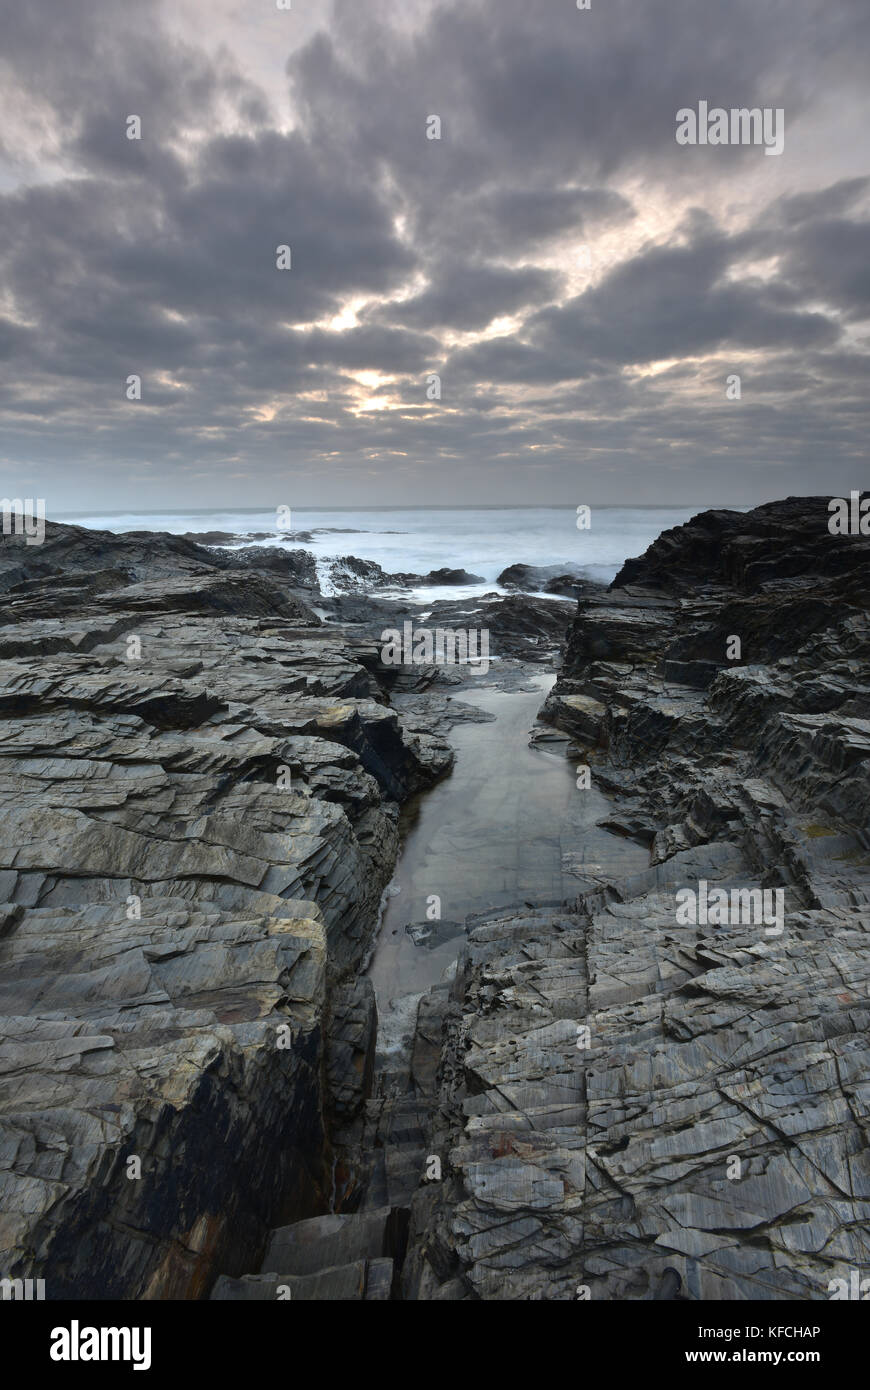 the rocky and rugged atmospheric Cornish coast on a stormy evening at sunset in Cornwall. Coastal scenes, Cornwall, - Stock Image